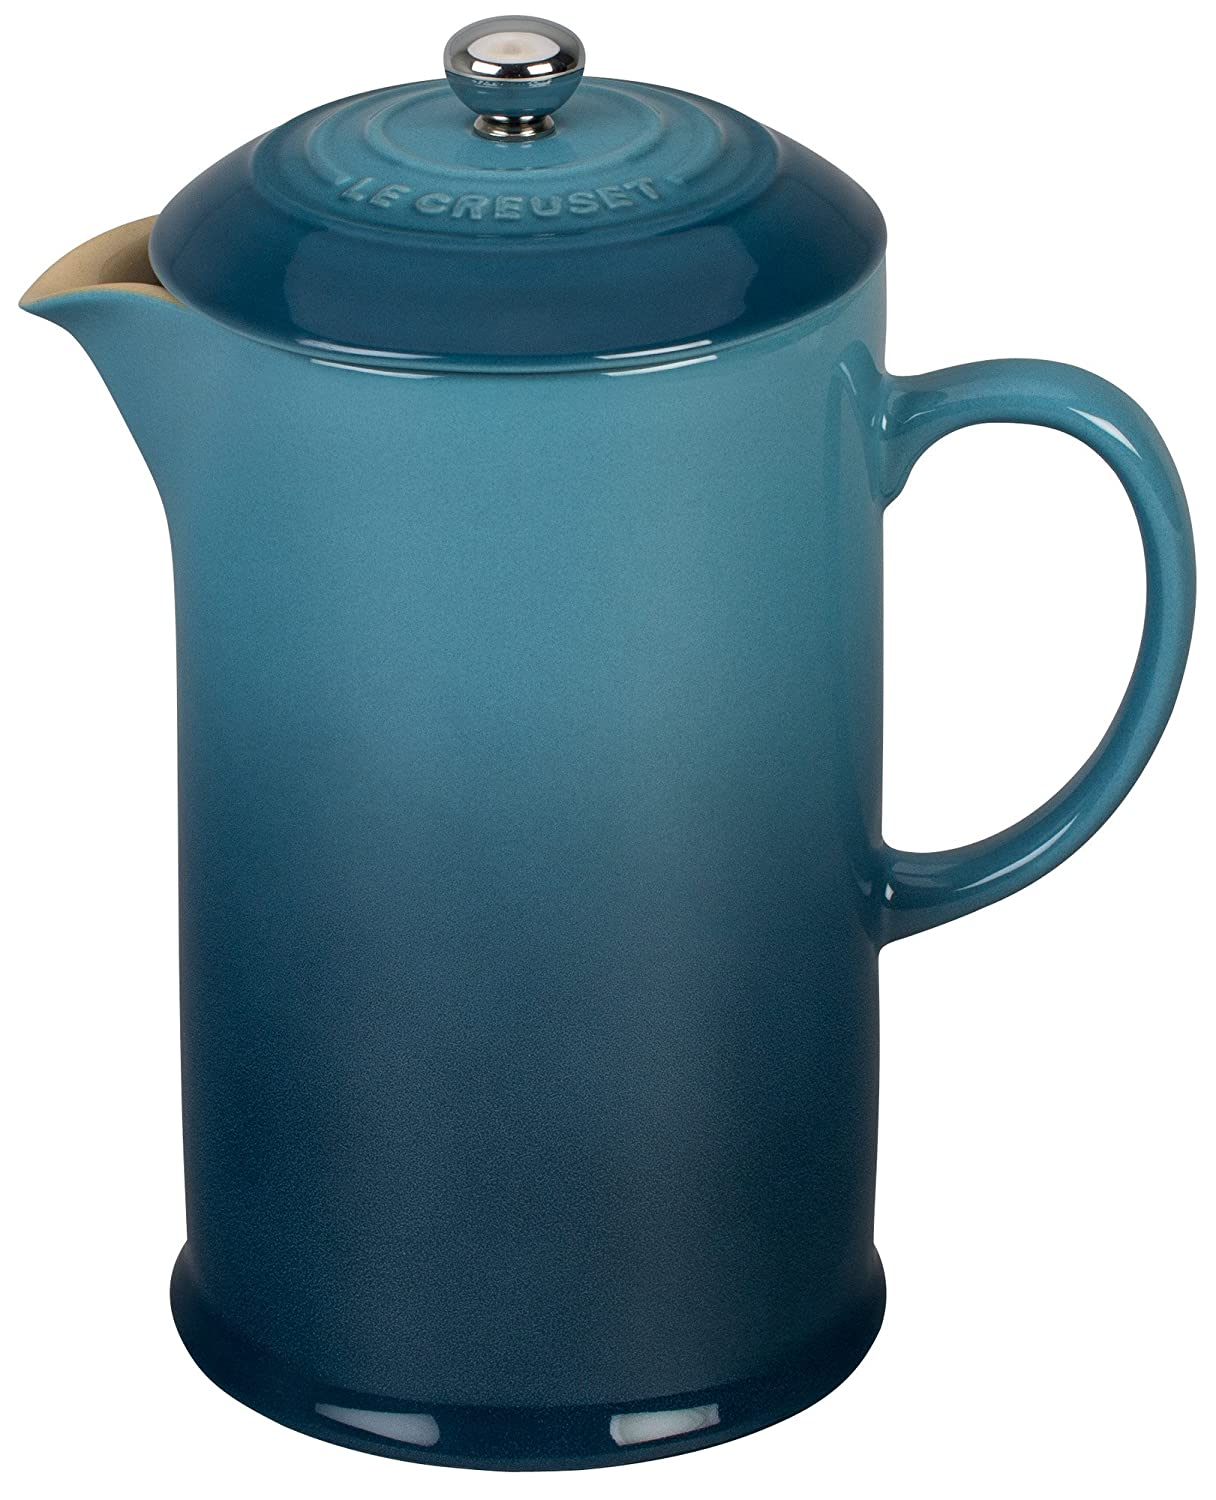 Le Creuset Unisex French Press Black French Press PG8200-1031